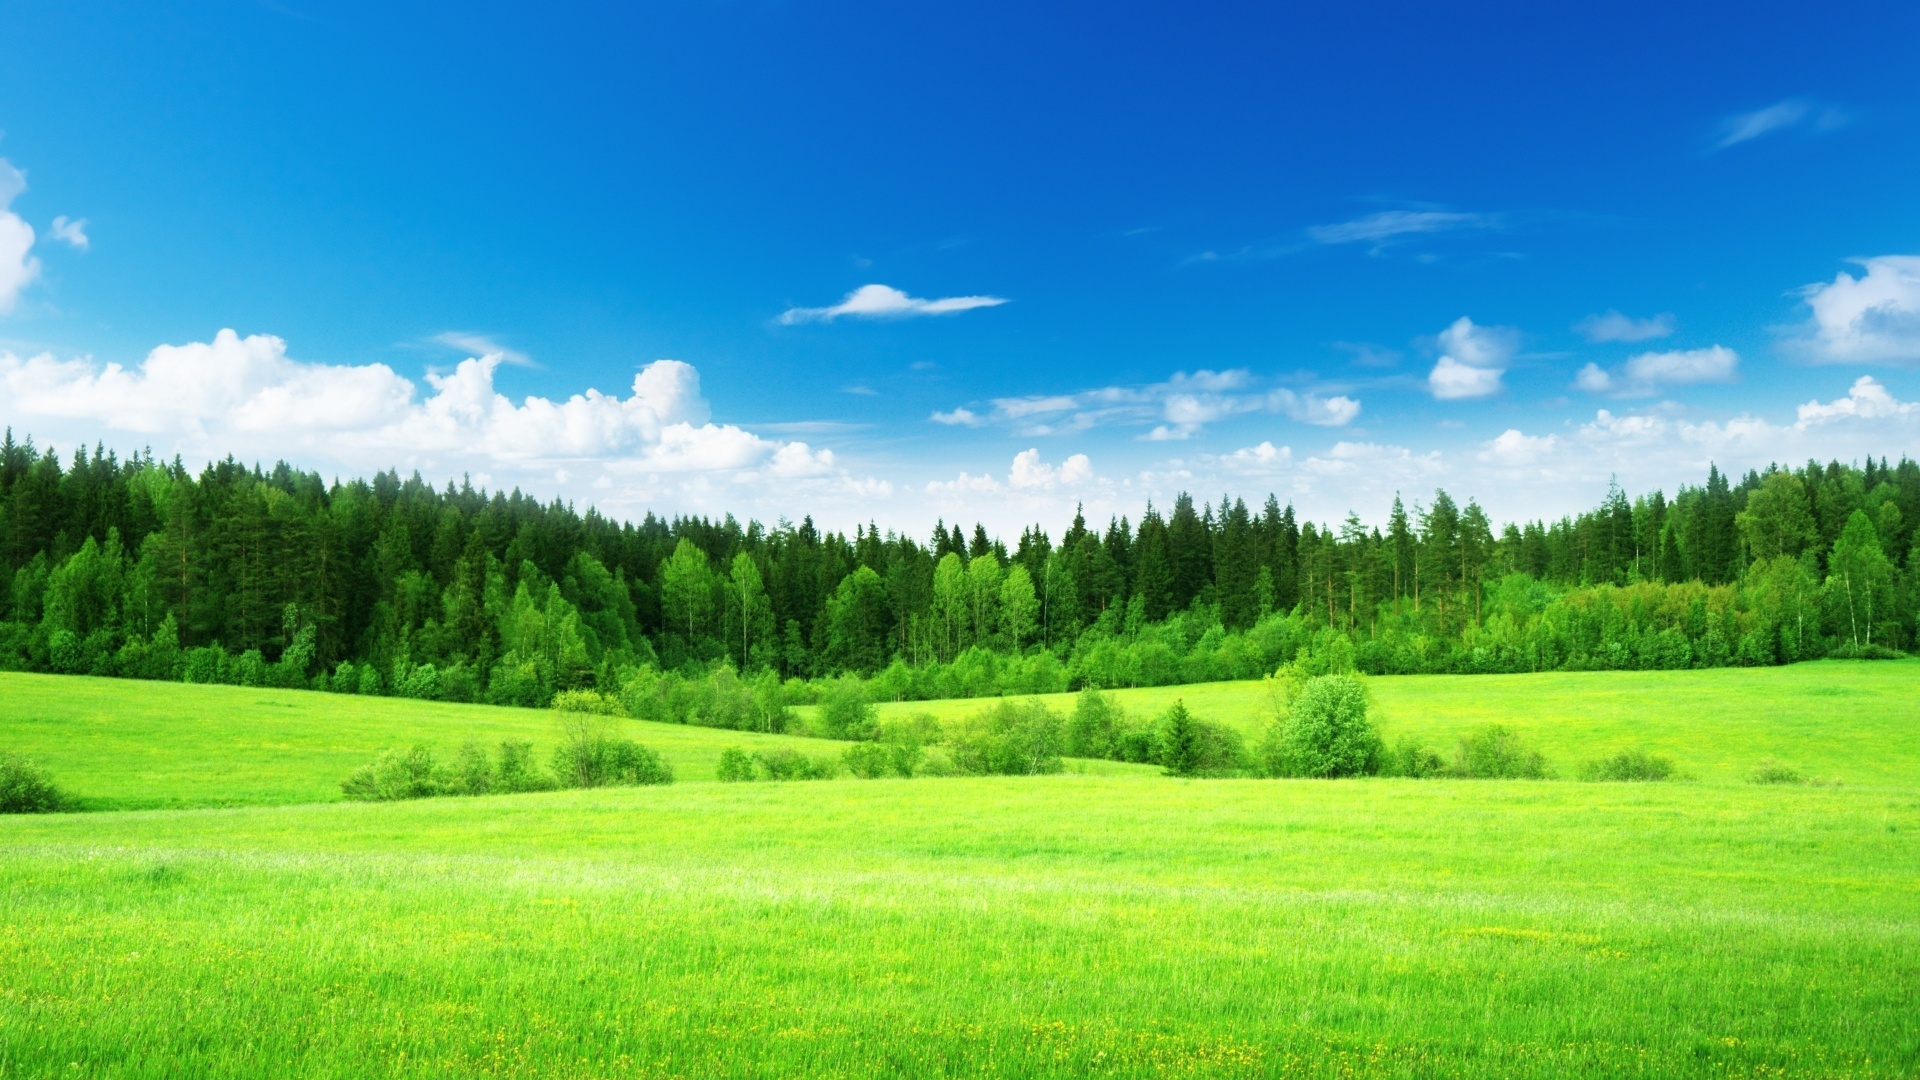 1920x1080 Sky Trees Amp Grass Green Meadow Desktop Pc And